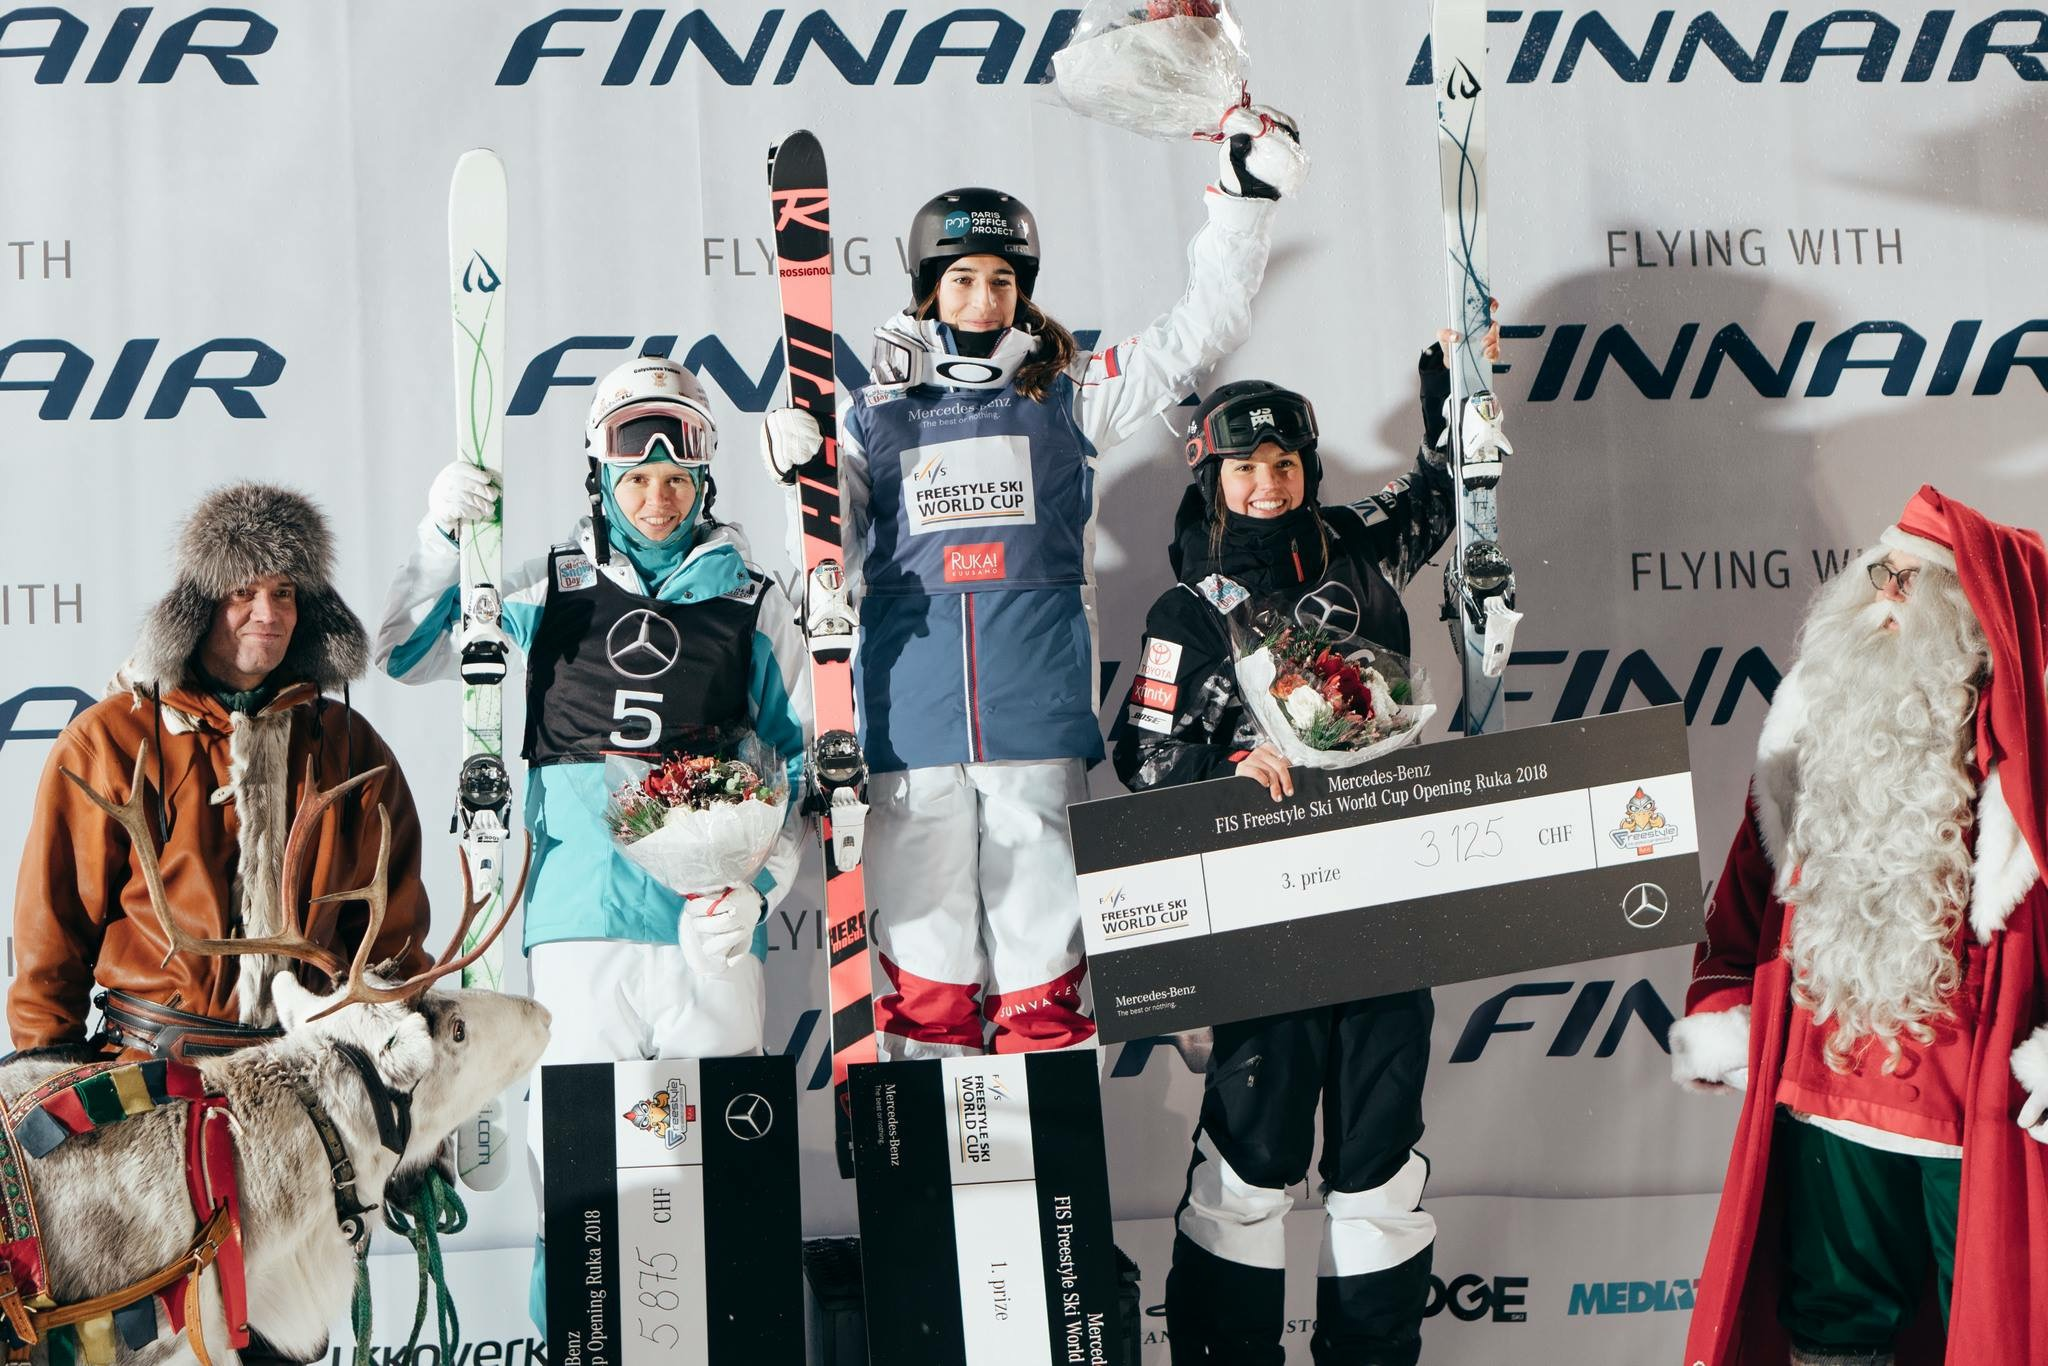 3rd Place in Ruka!